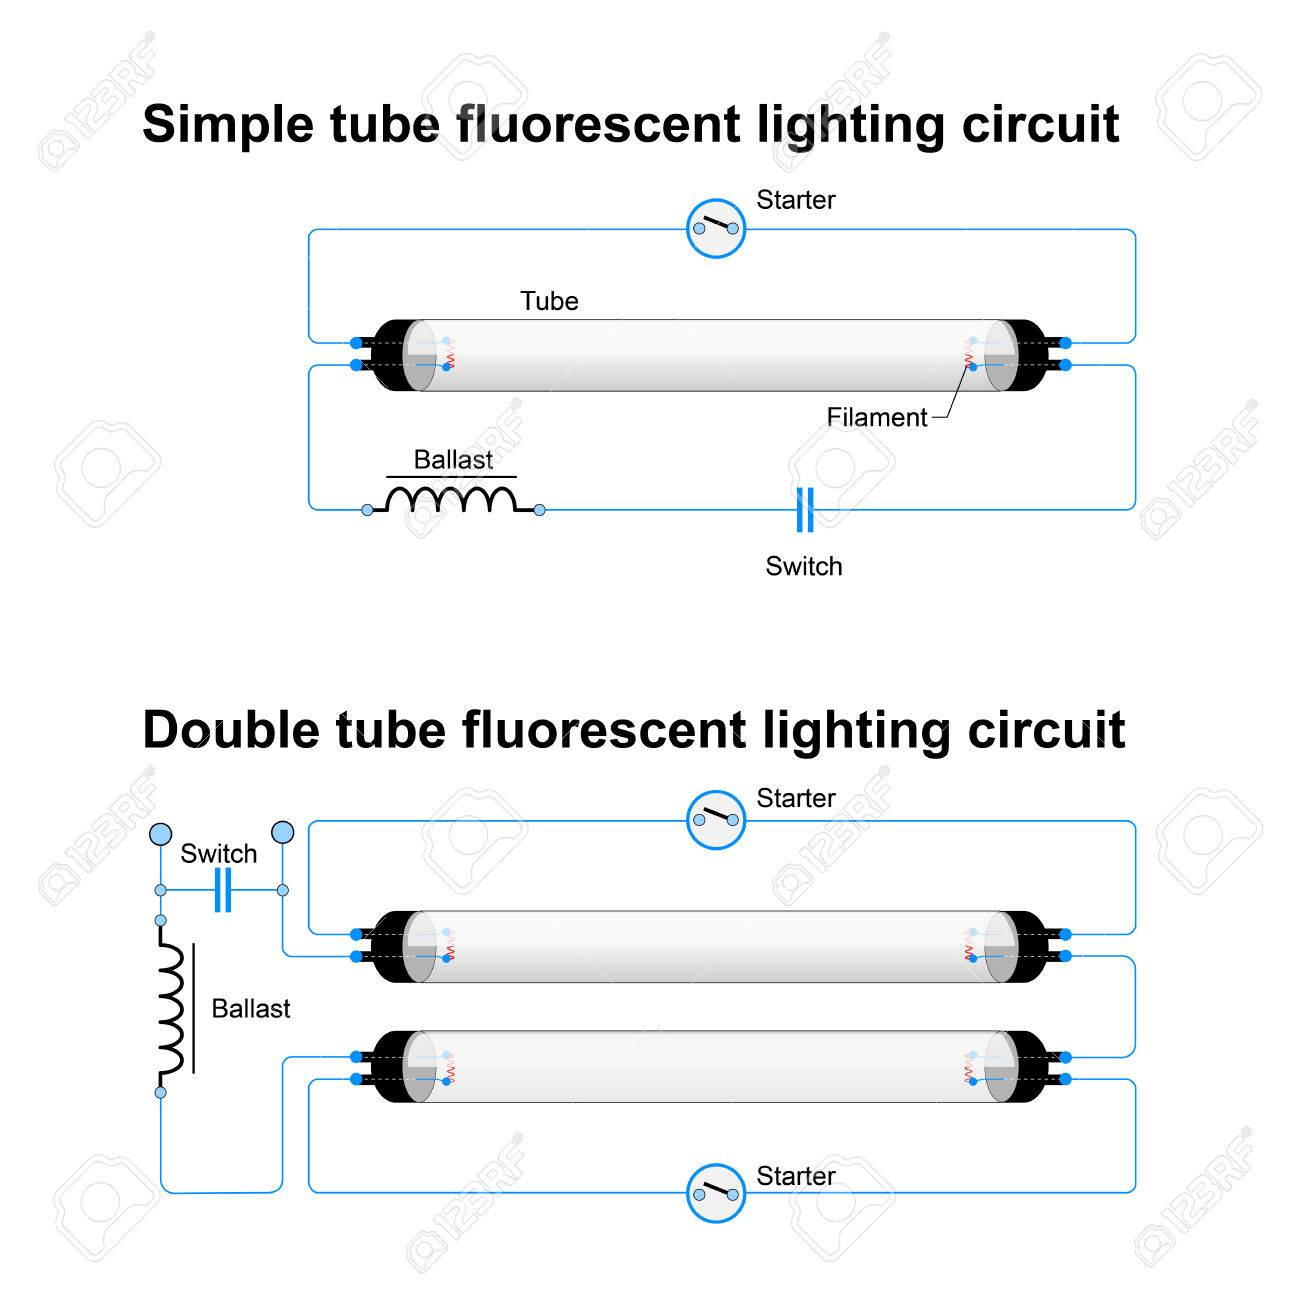 Astounding Fluorescent Light Fixture Wiring Help Needed Ar15Com Diagram Data Wiring 101 Capemaxxcnl